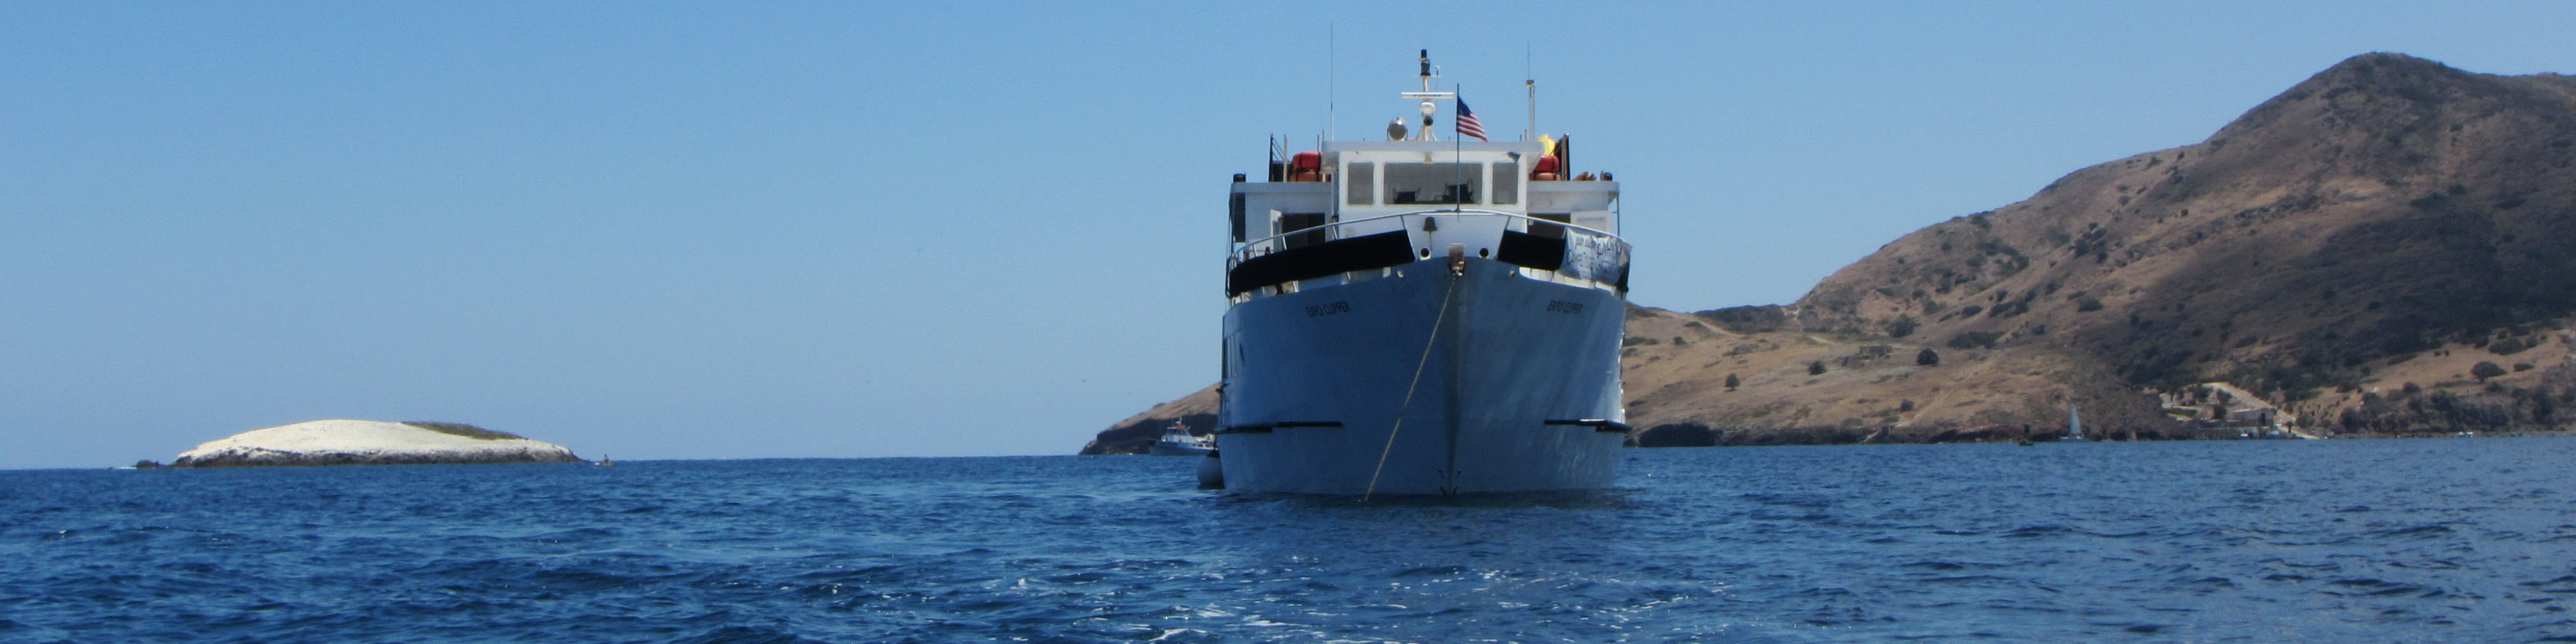 Affordable-Diving-Charters-in-Long-Beach